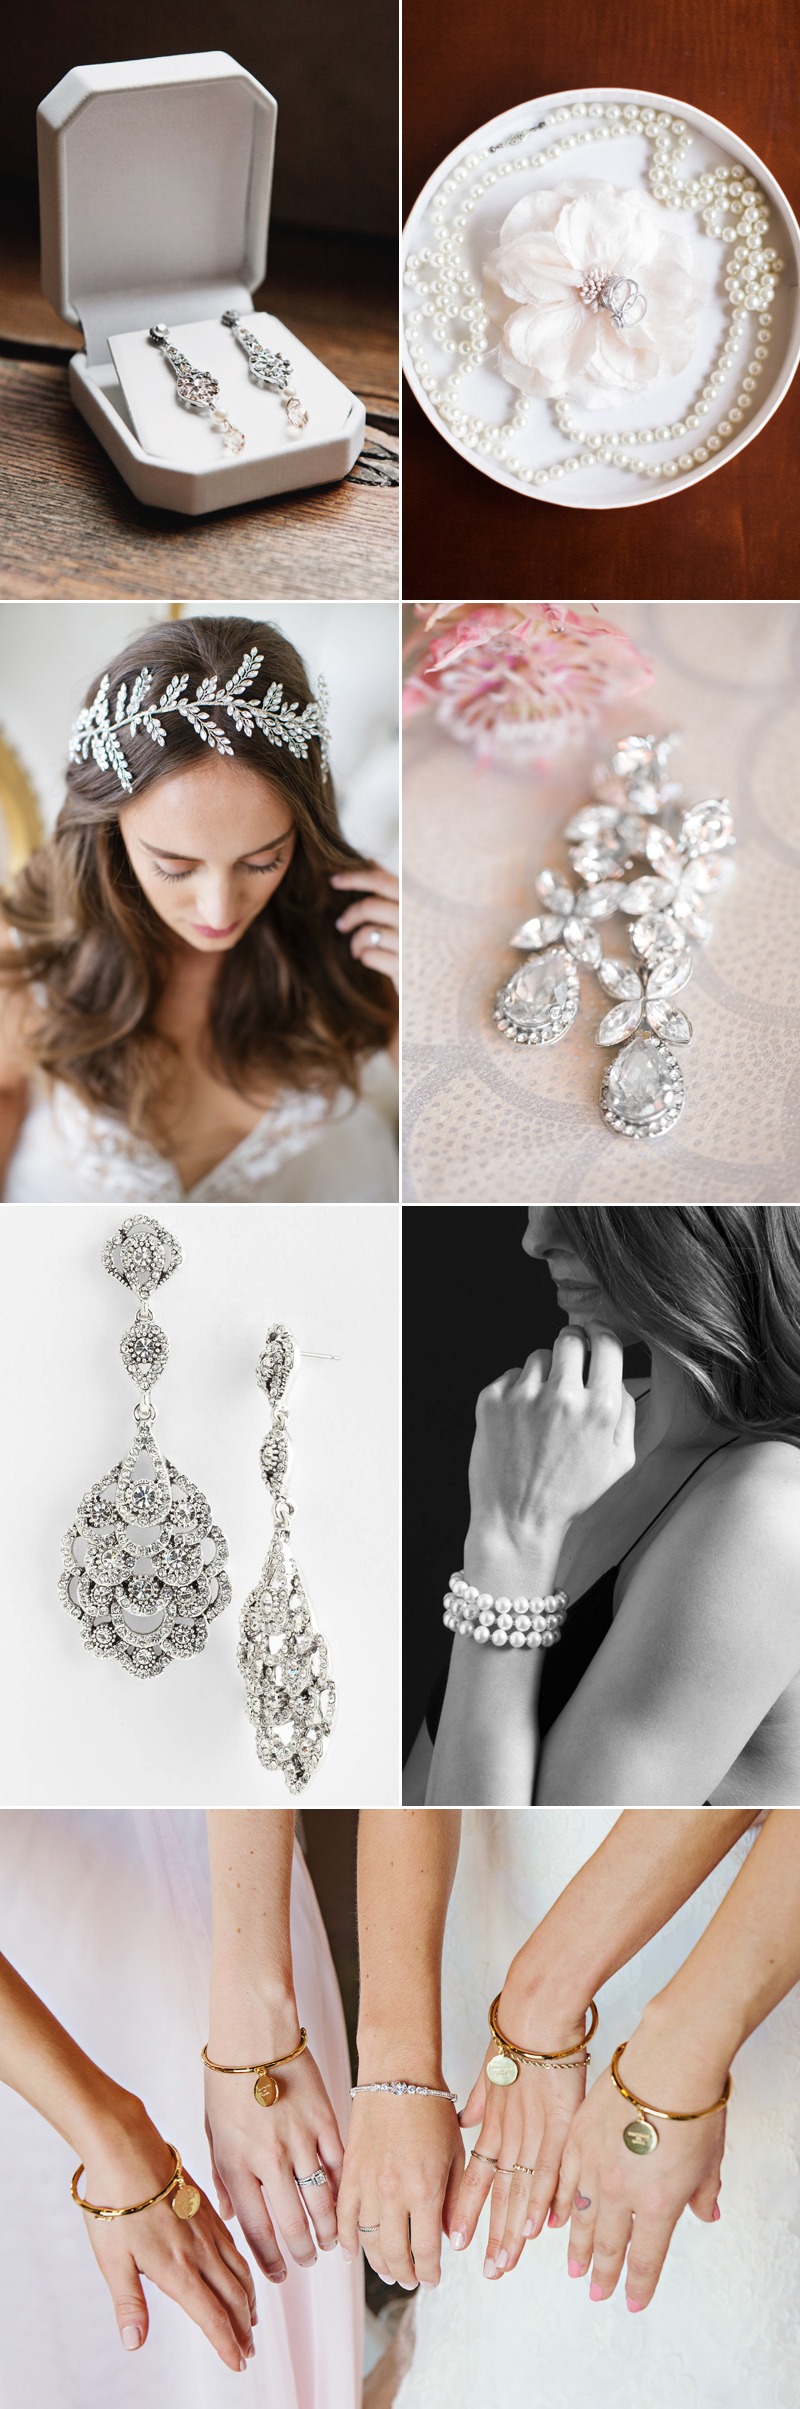 Where to Get Your Wedding Jewelry 6 Bridal Jewelry Shops for Every